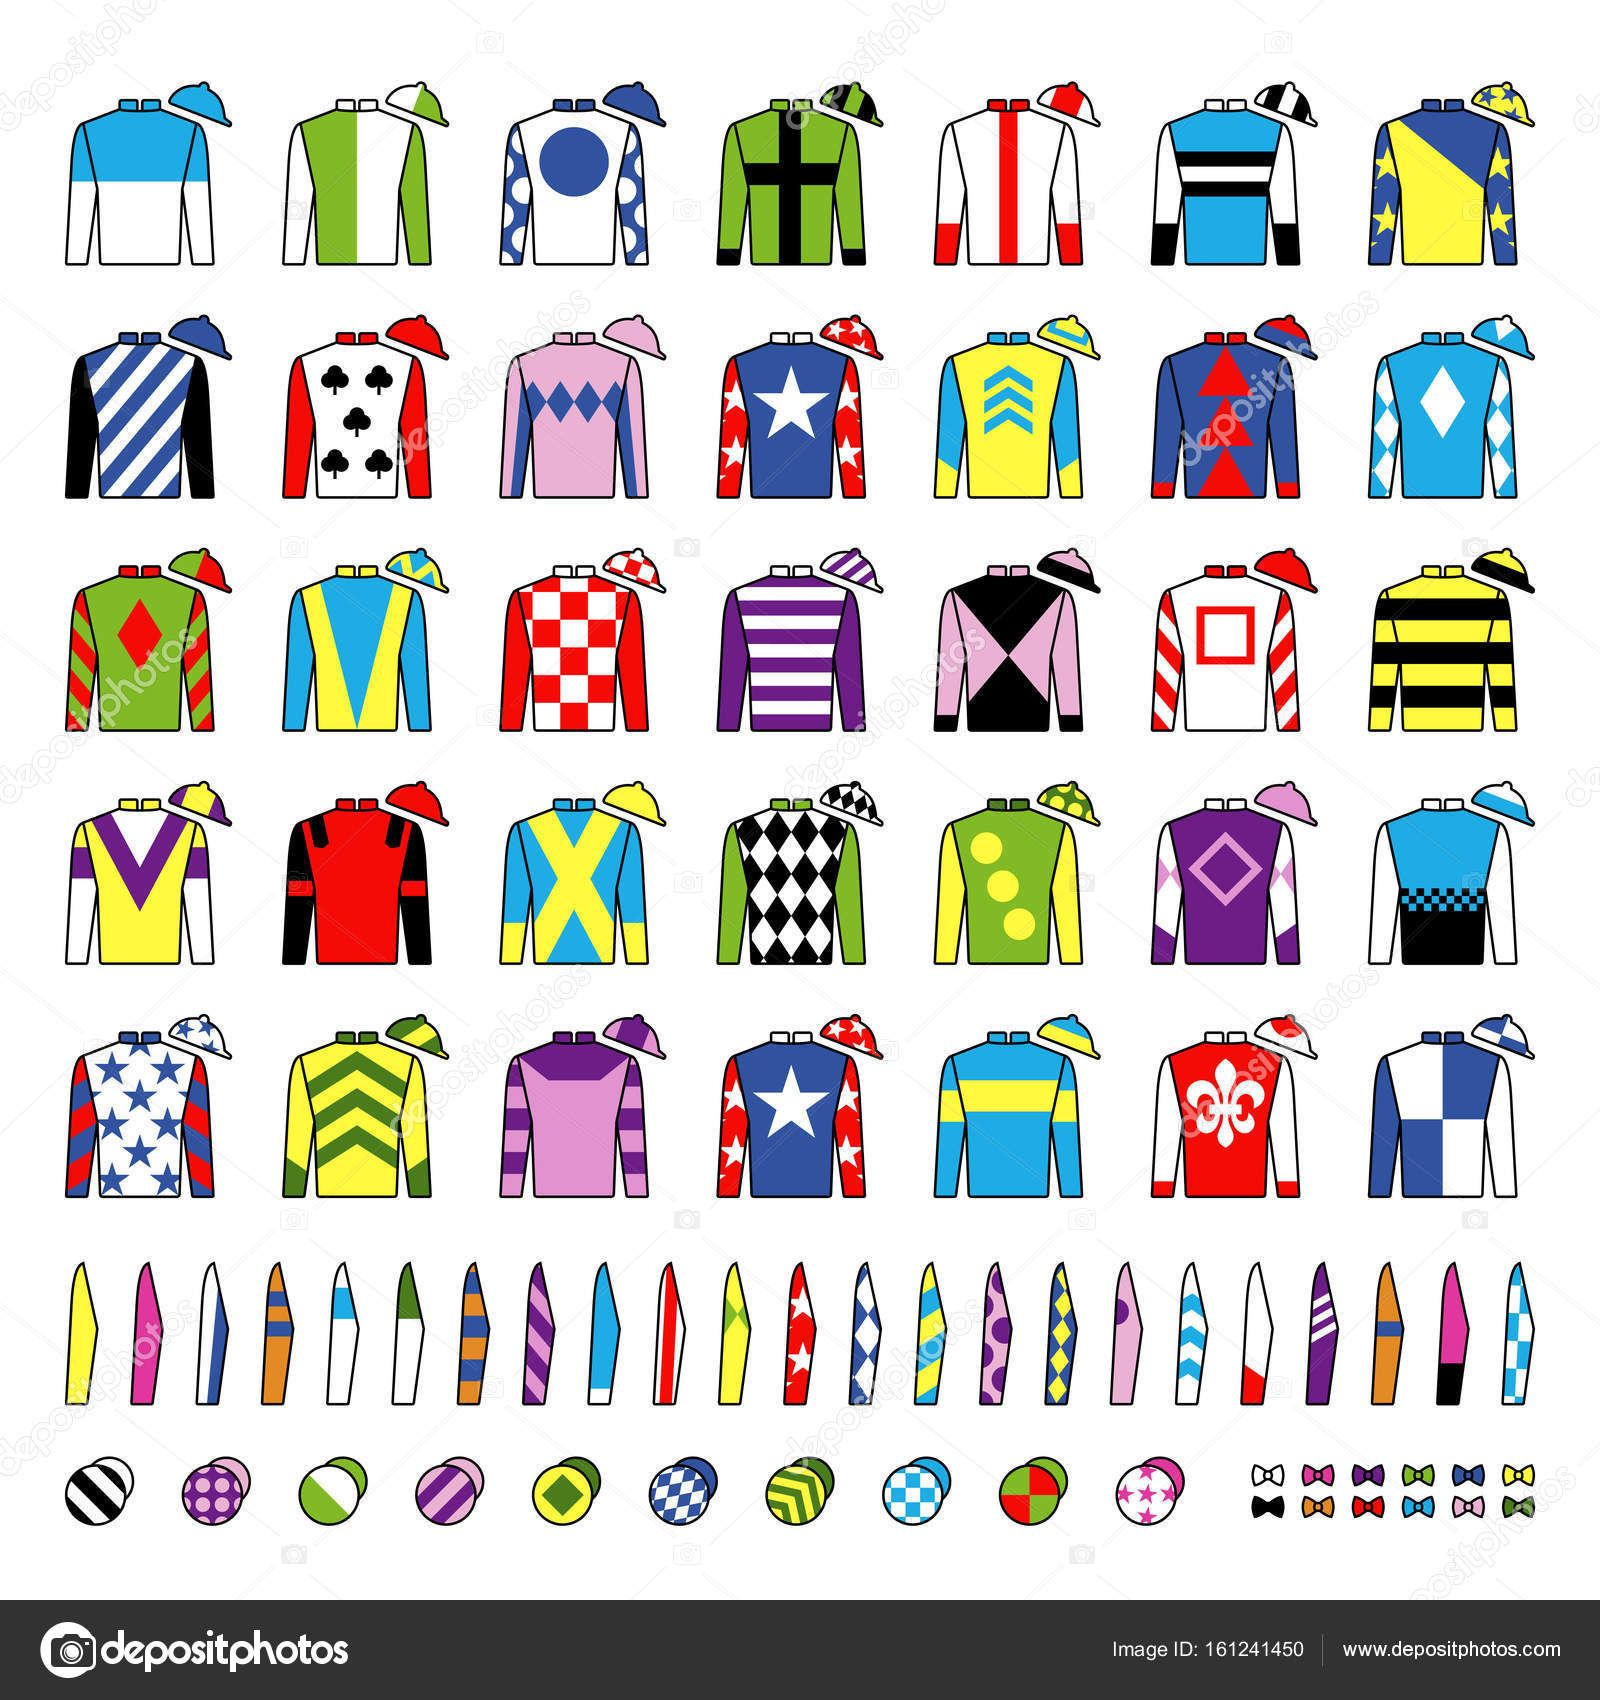 Download Jockey Uniform Traditional Design Jackets Silks